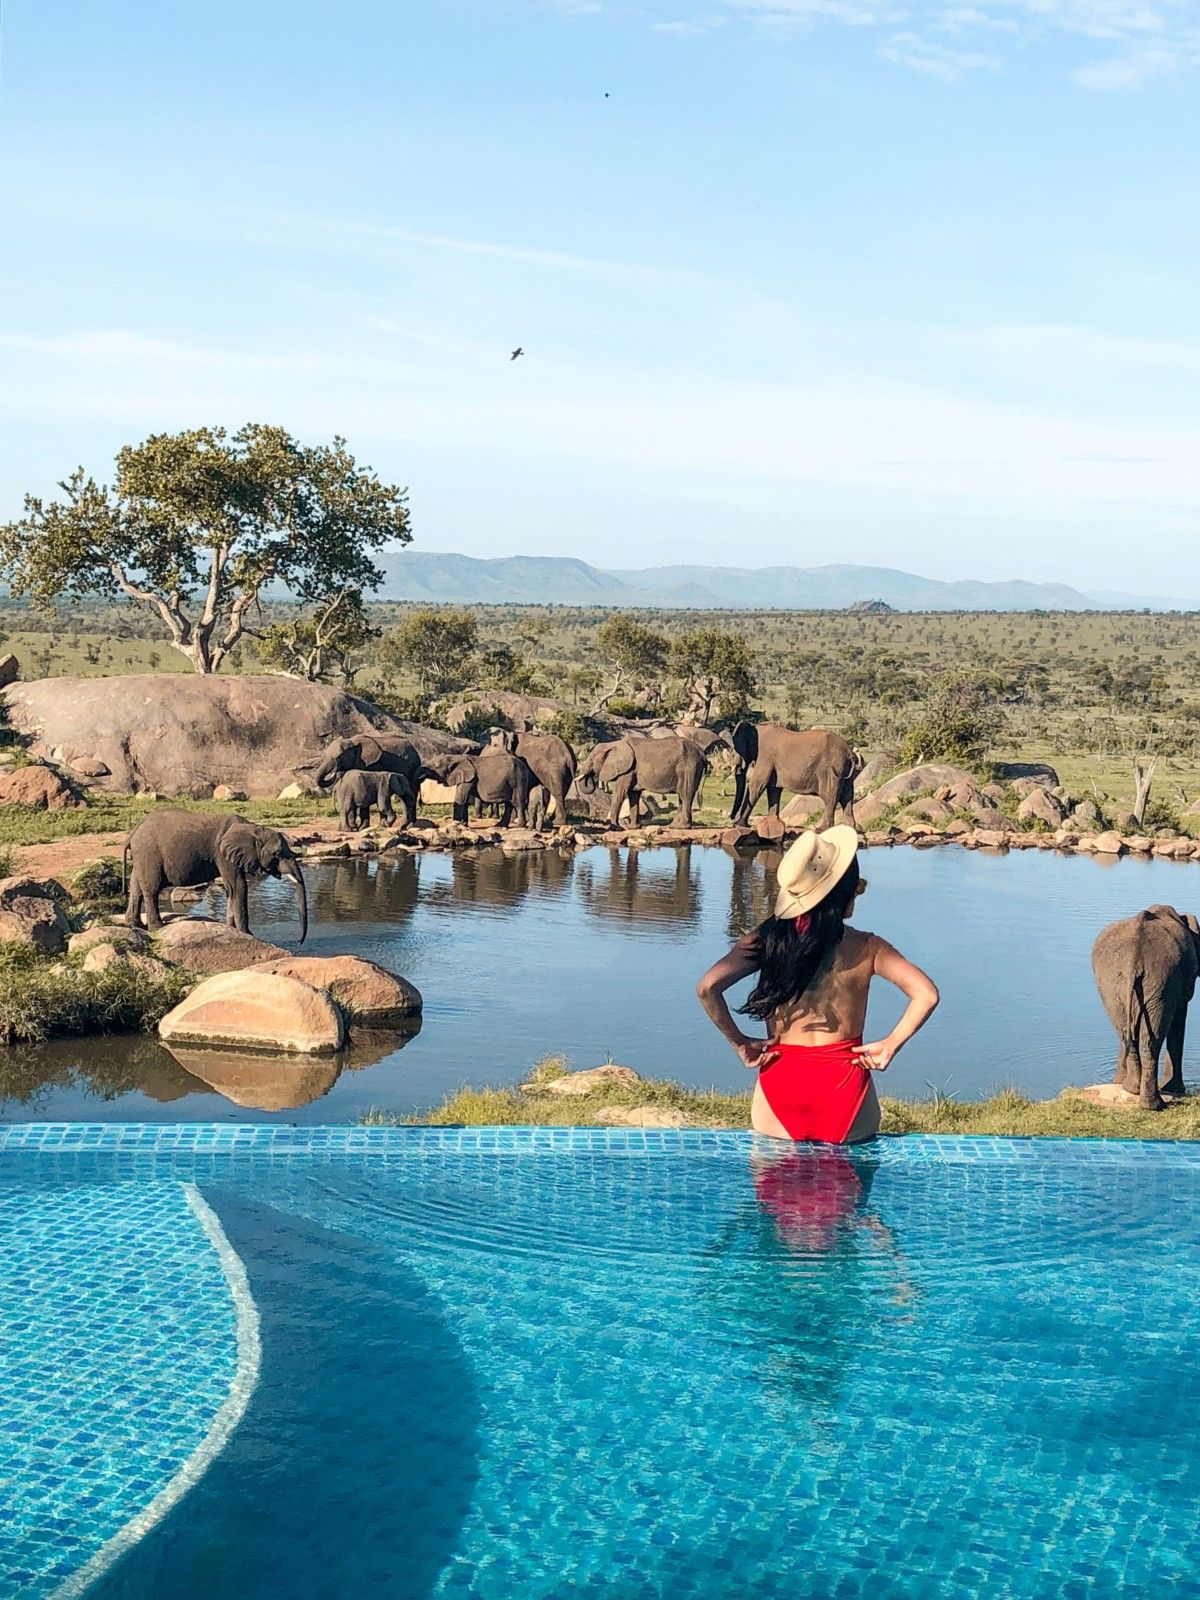 21 Spectacular Photos That Will Send You To Serengeti National Park Serengeti National Park National Parks Africa Destinations